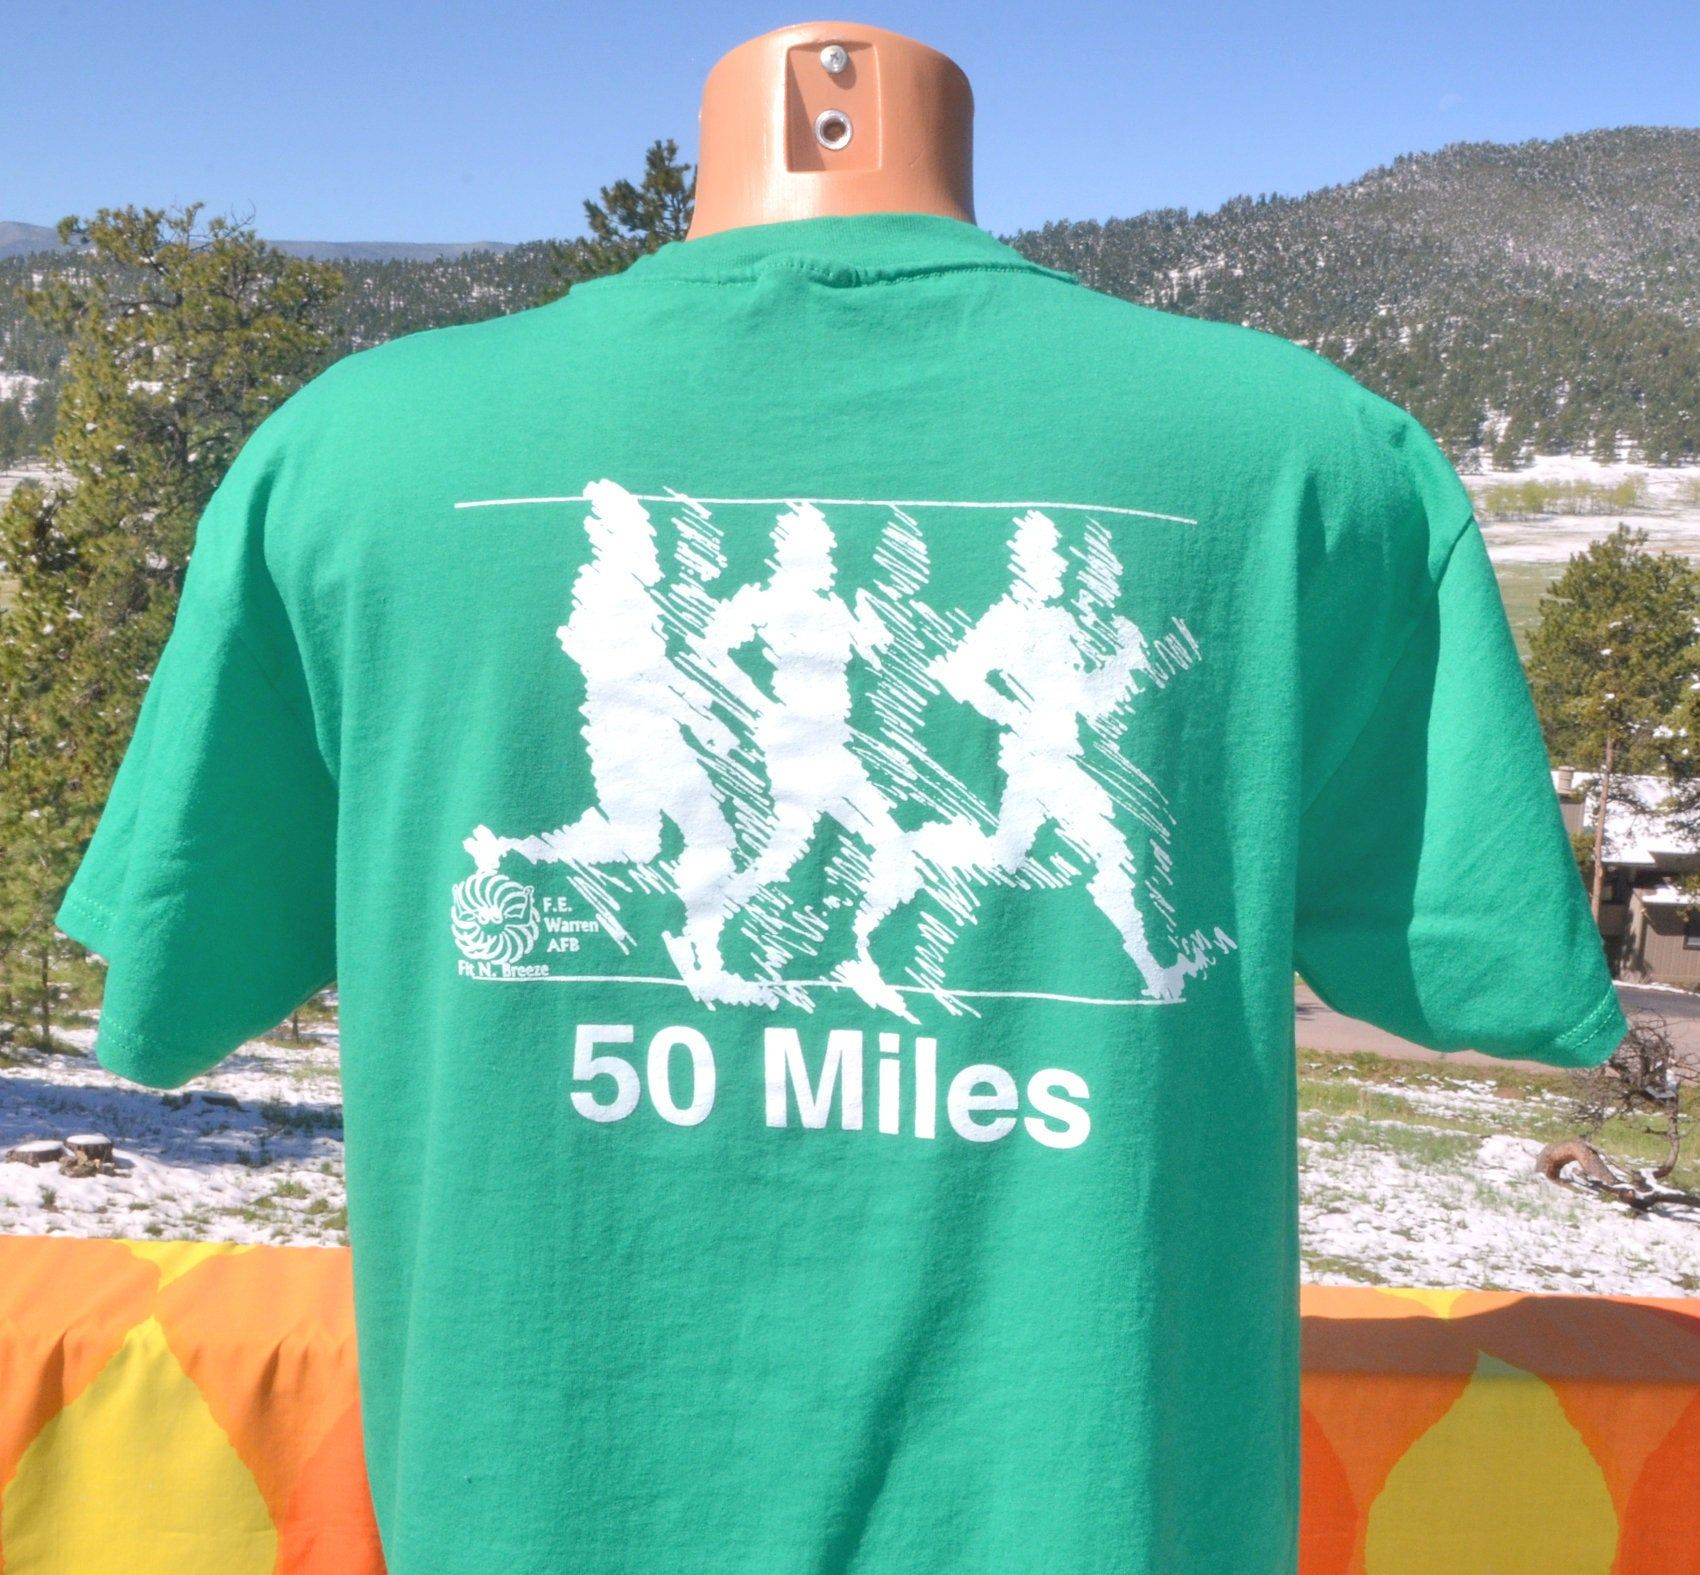 vintage 90s tee RUN warren afb air force road race green t